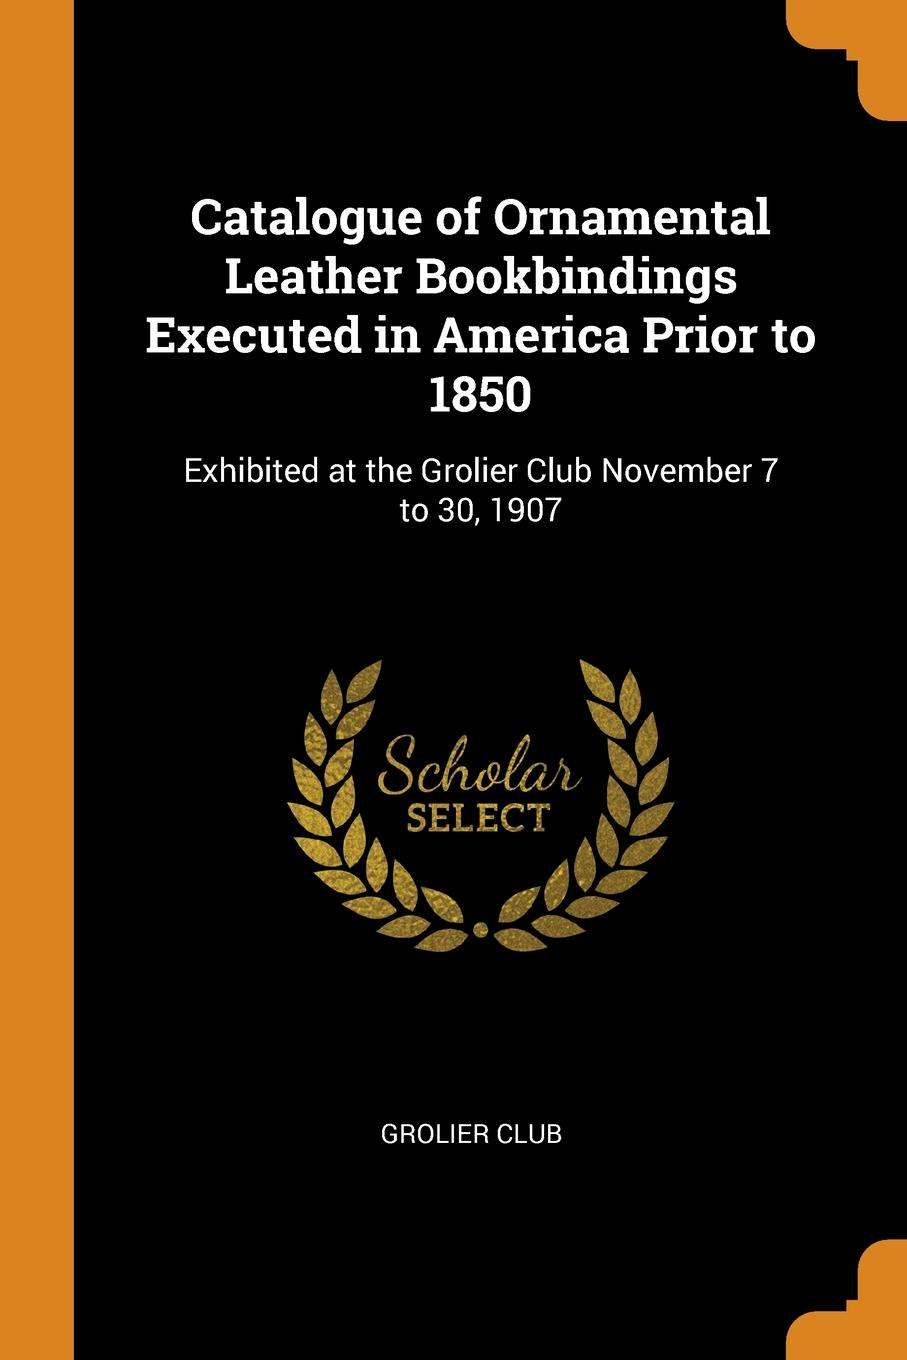 Catalogue of Ornamental Leather Bookbindings Executed in America Prior to 1850. Exhibited at the Grolier Club November 7 to 30, 1907